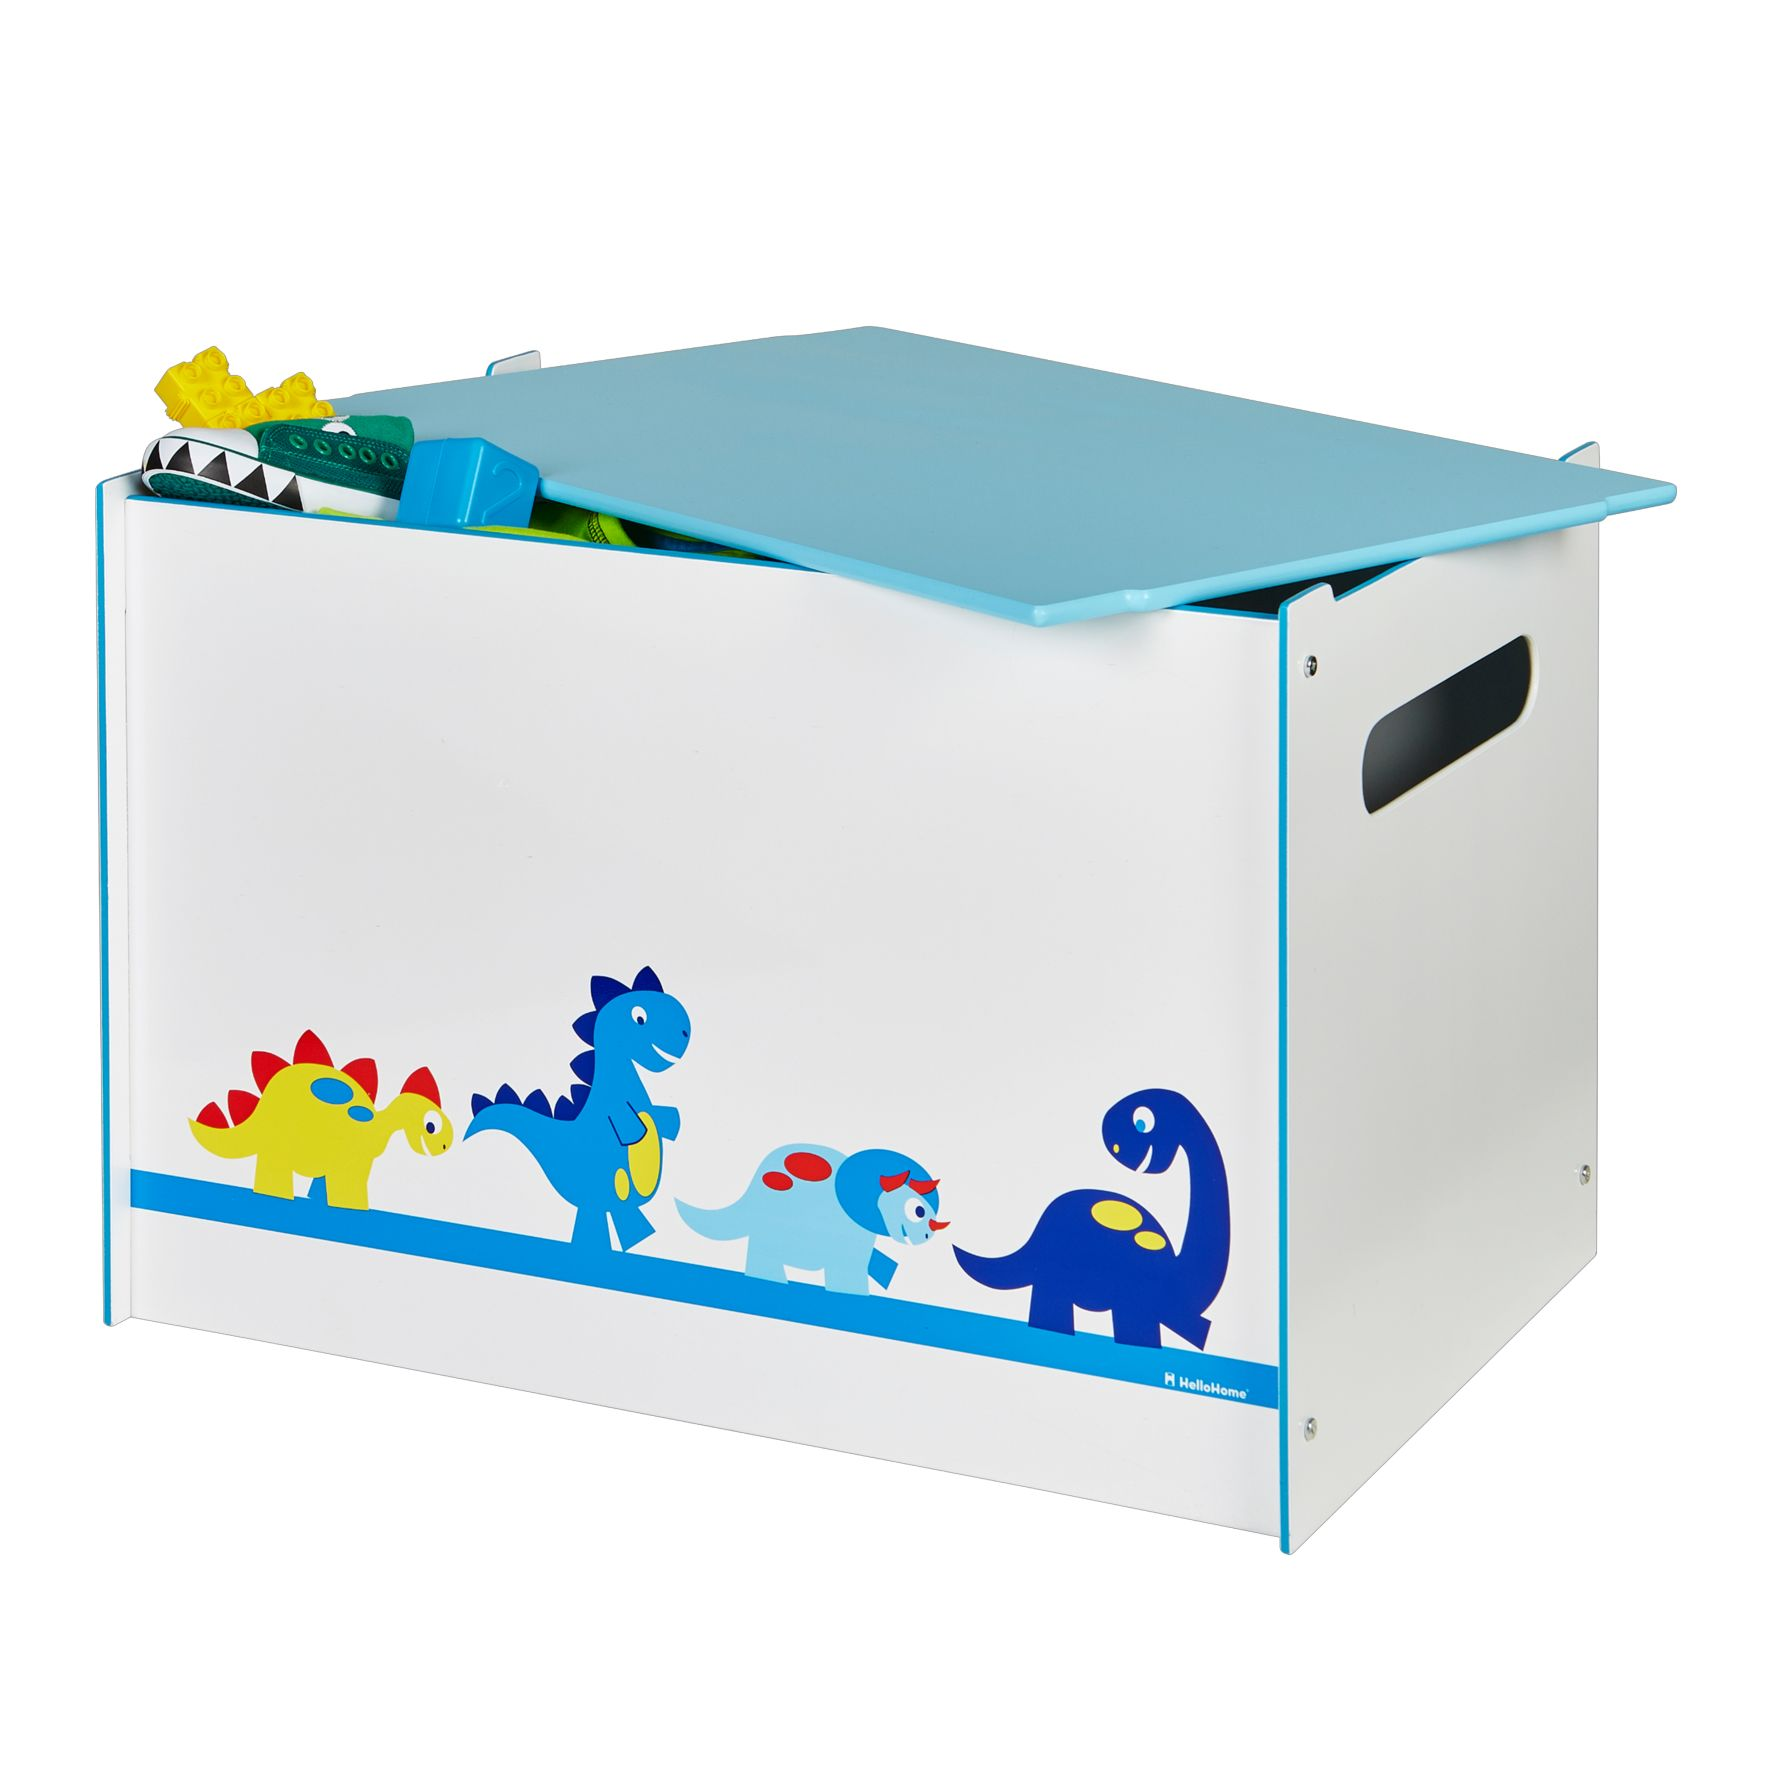 Dinosaurs Toy Box for children in S.A